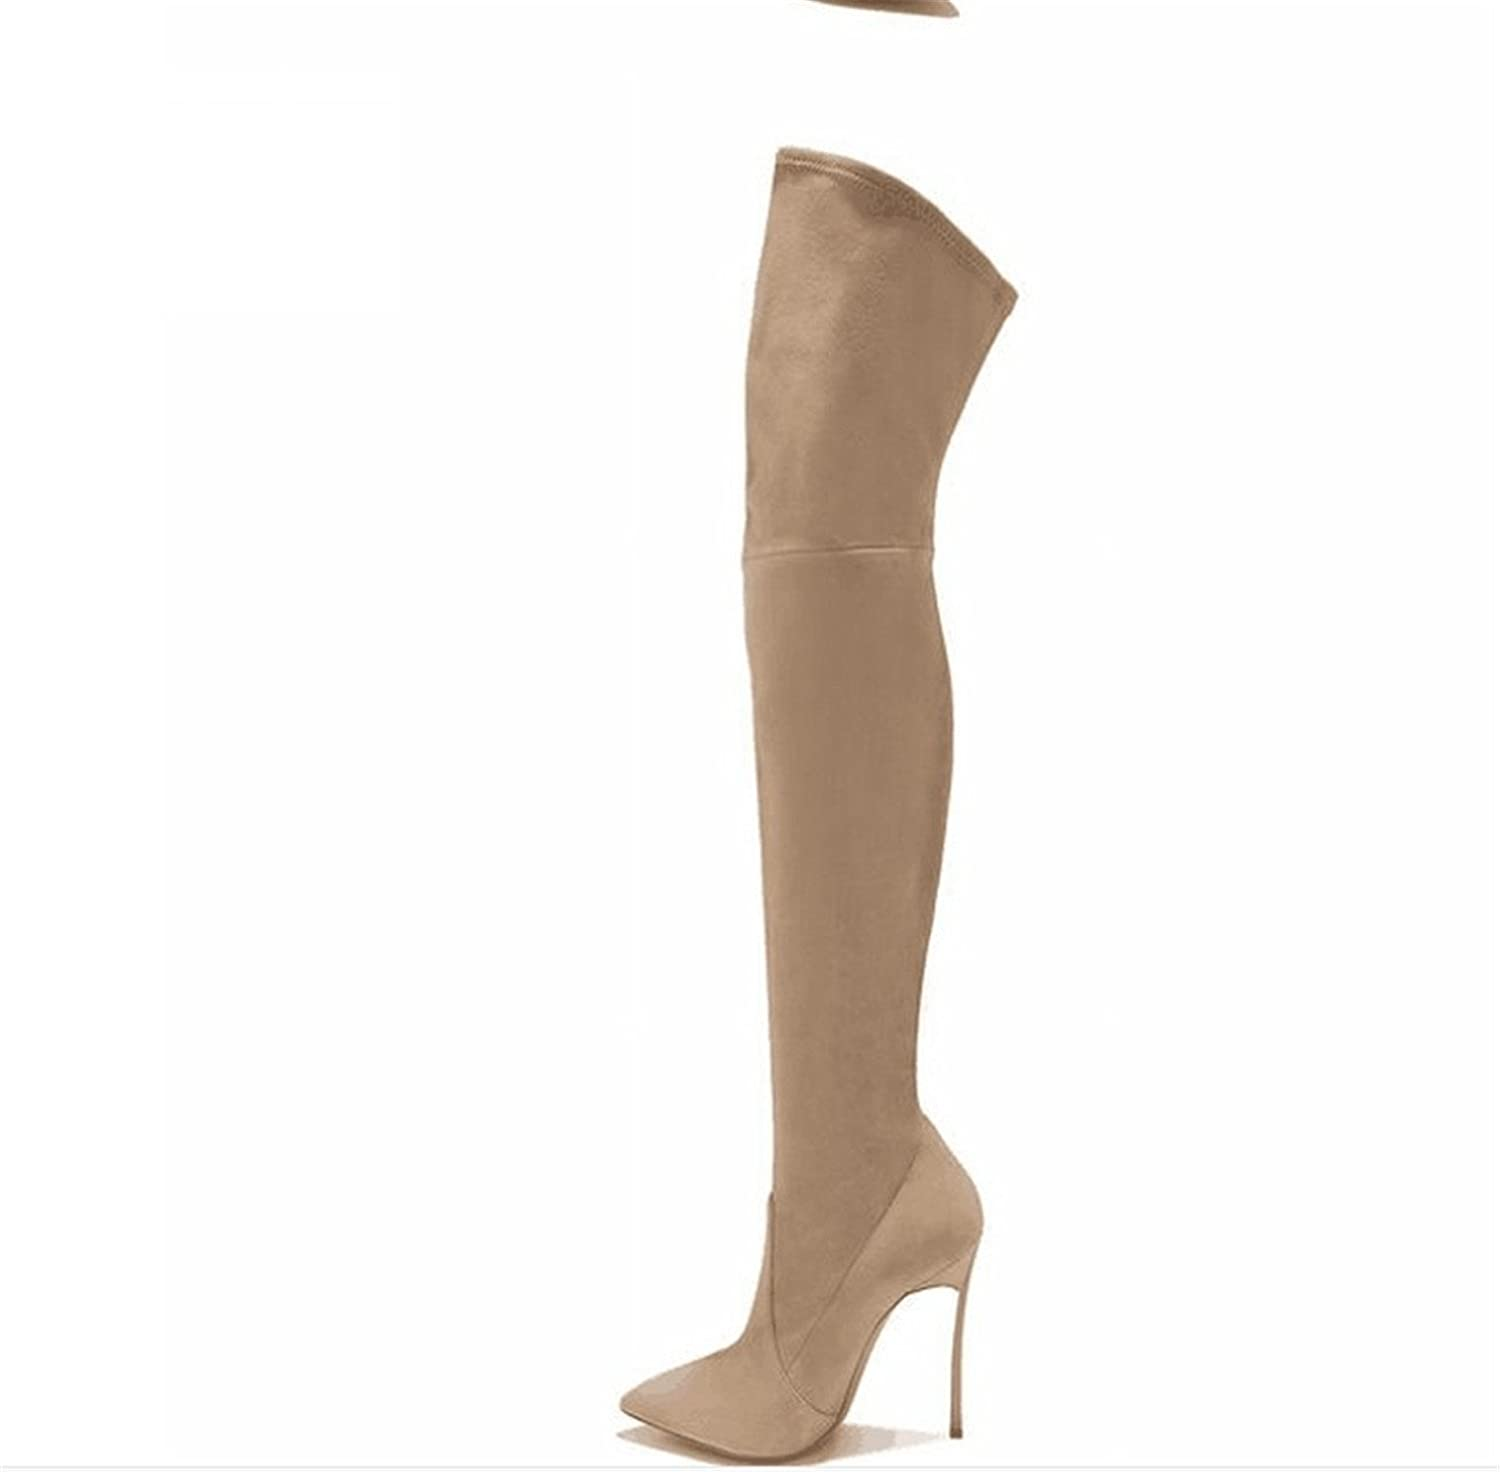 989eafceddf Boots Dormery 35-43 PU/Suede 2 Option Plus Size Point Toe Spring Over The  Knee ...